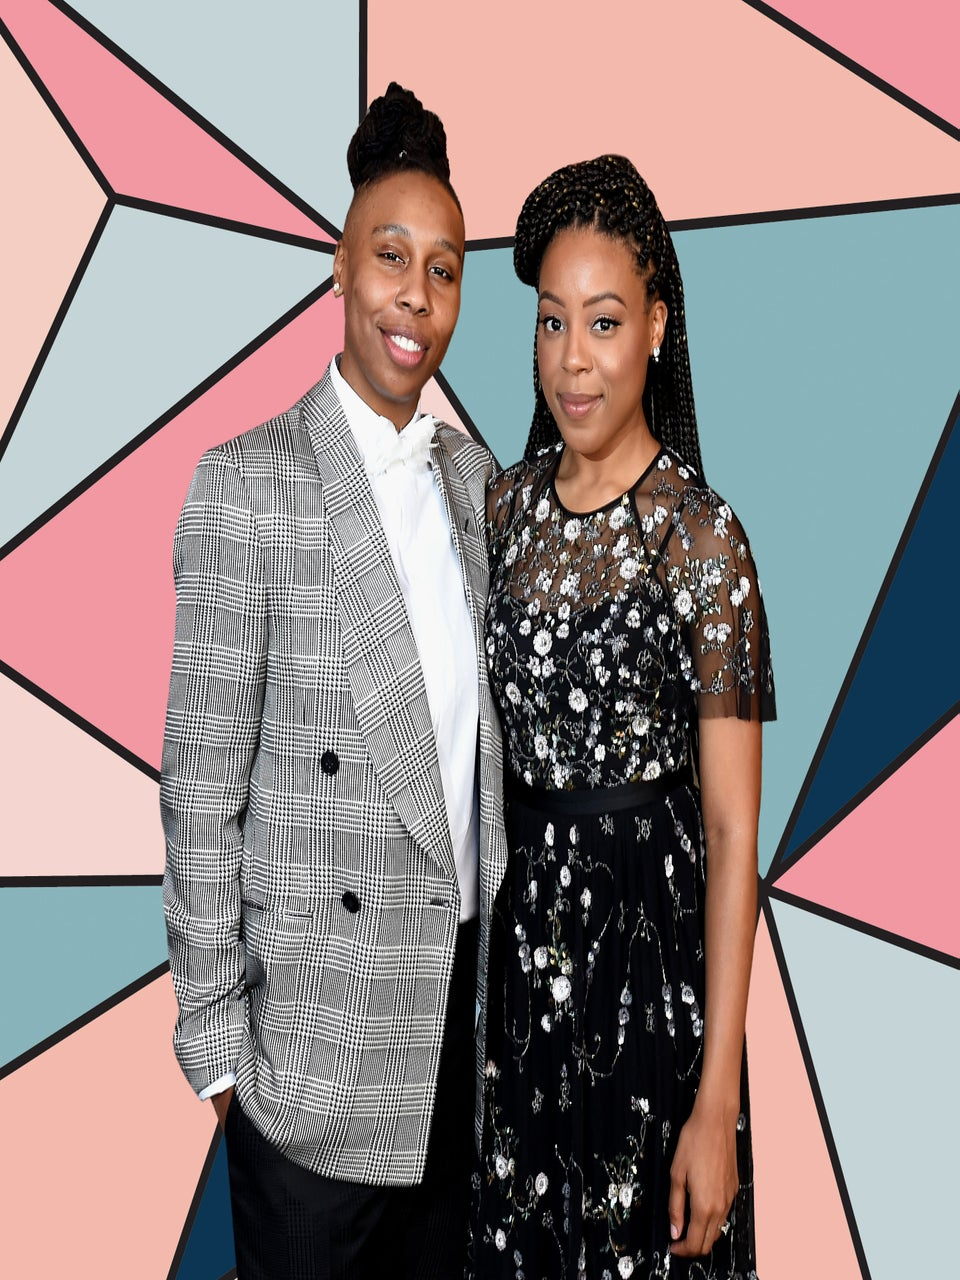 How Perfect! Lena Waithe Got A Pair Of Engagement Sneakers From Her Fiancée Instead Of A Ring